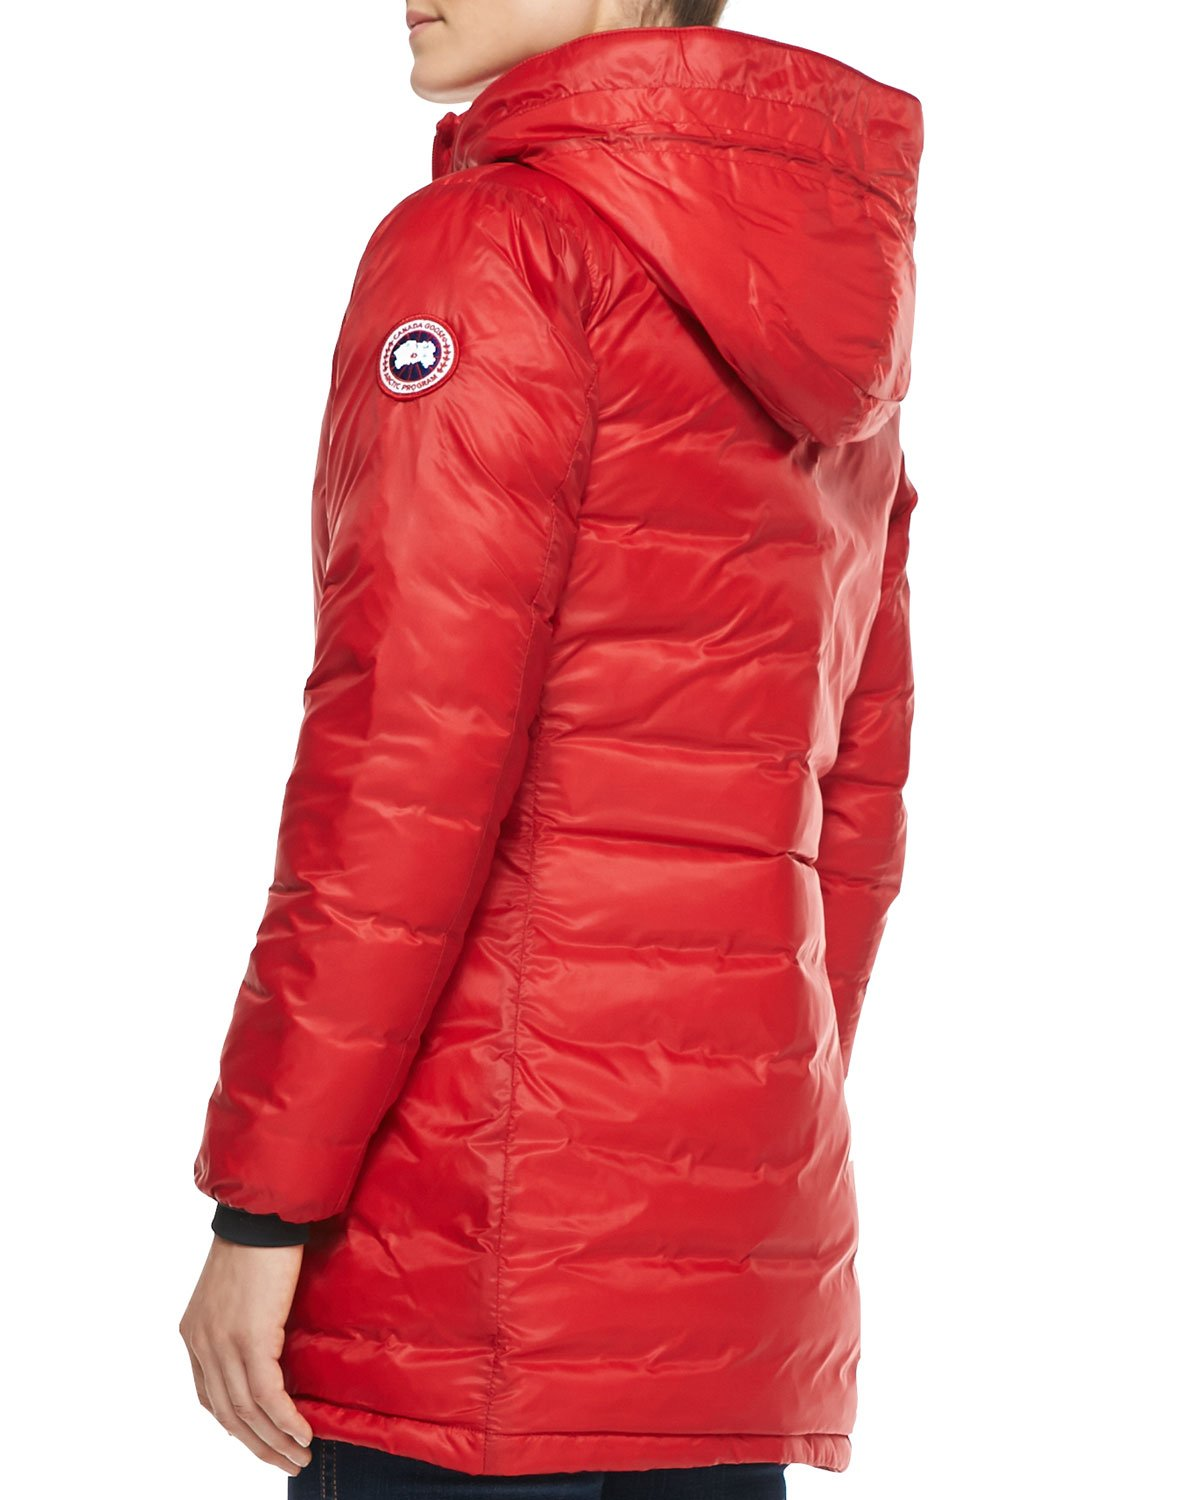 Lyst - Canada Goose Camp Hooded Mid-Length Puffer Coat in Red 1bde8e6a5